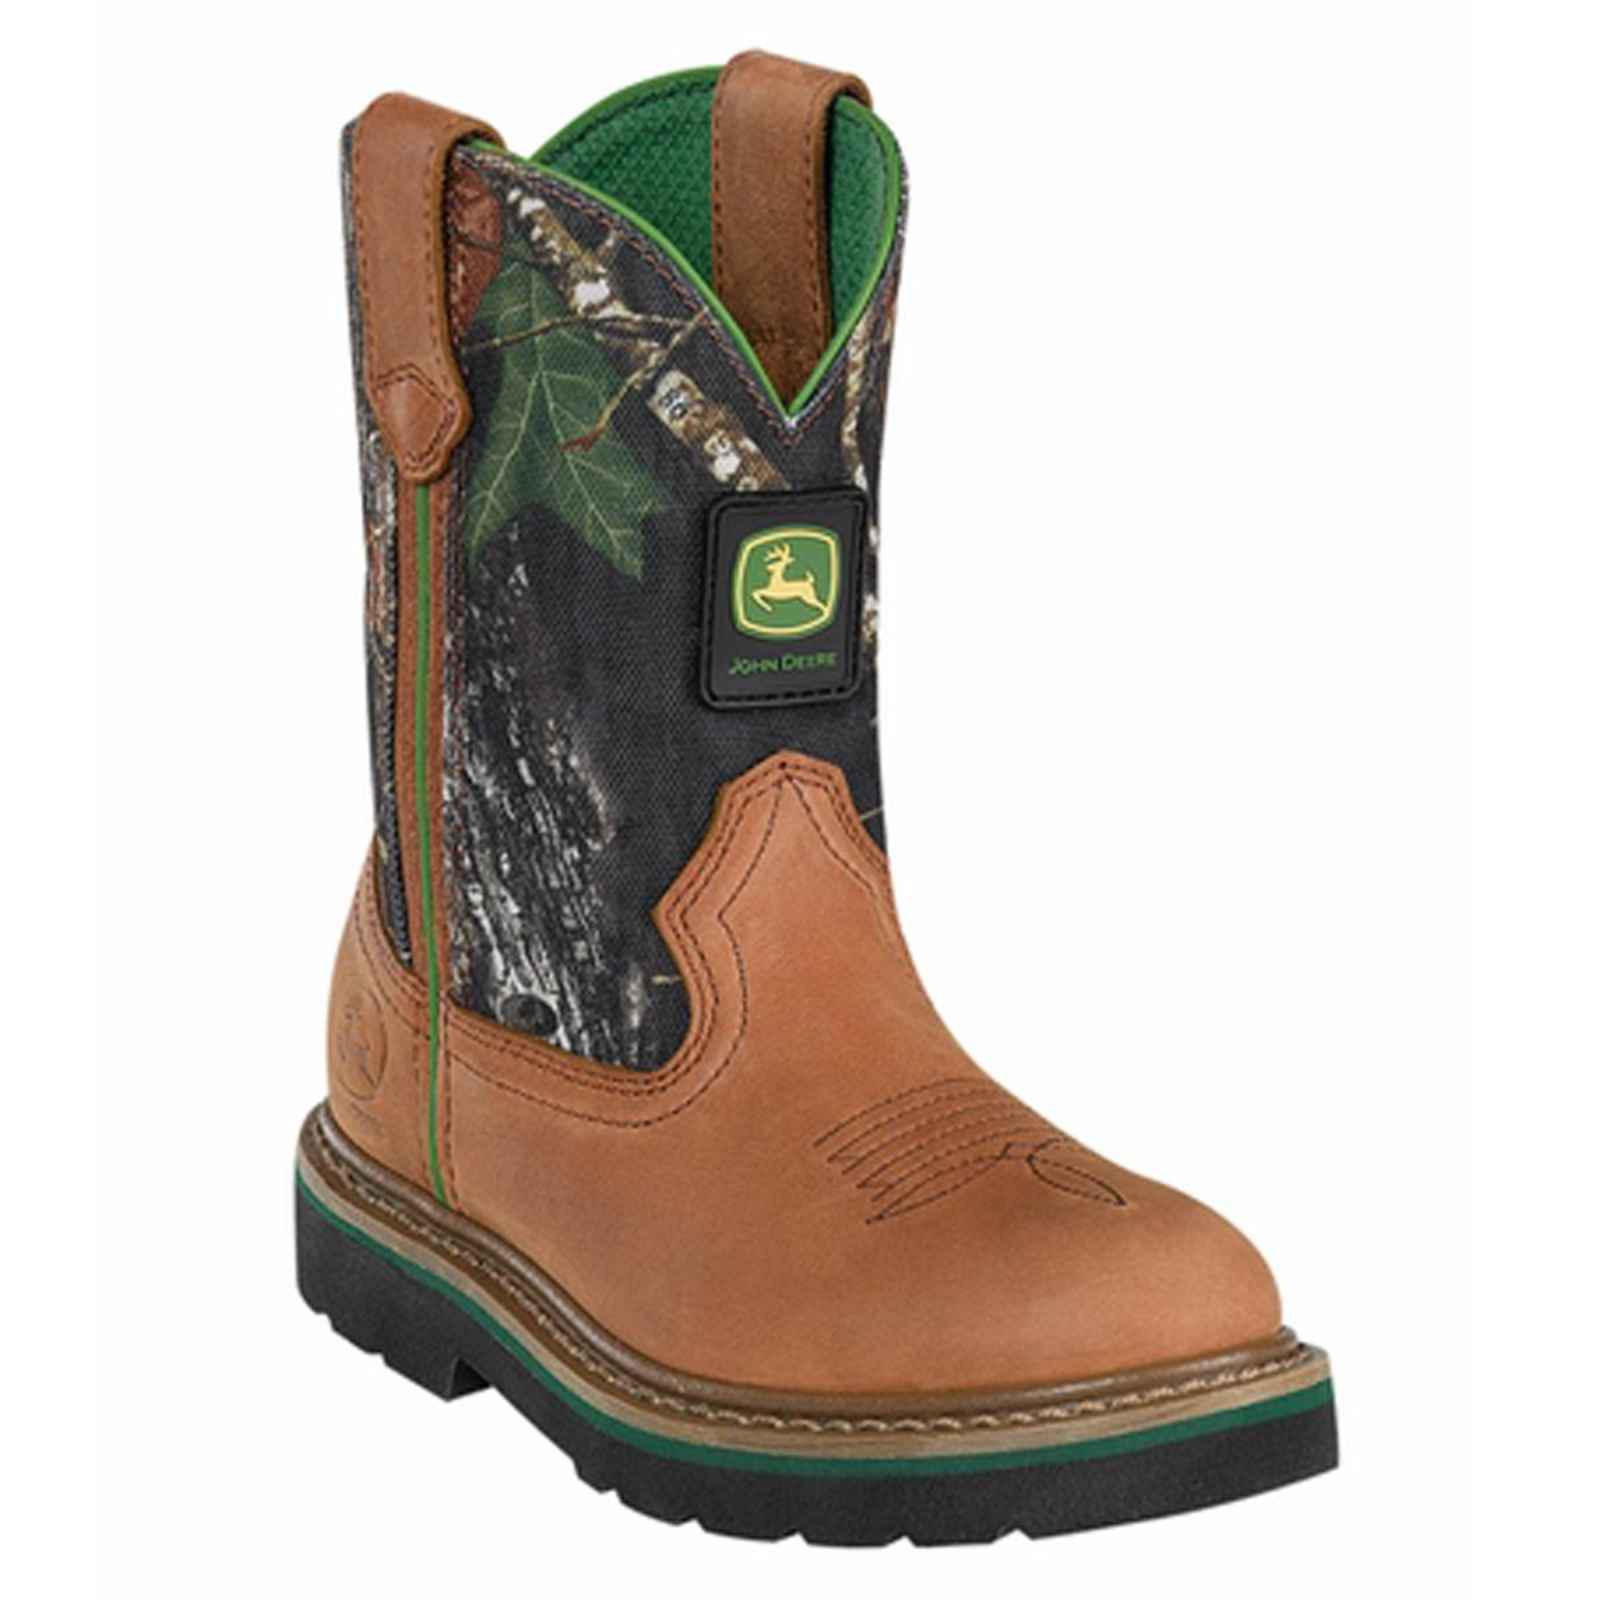 John Deere Children's Tan and Camo Western Boots JD2188 by John Deere